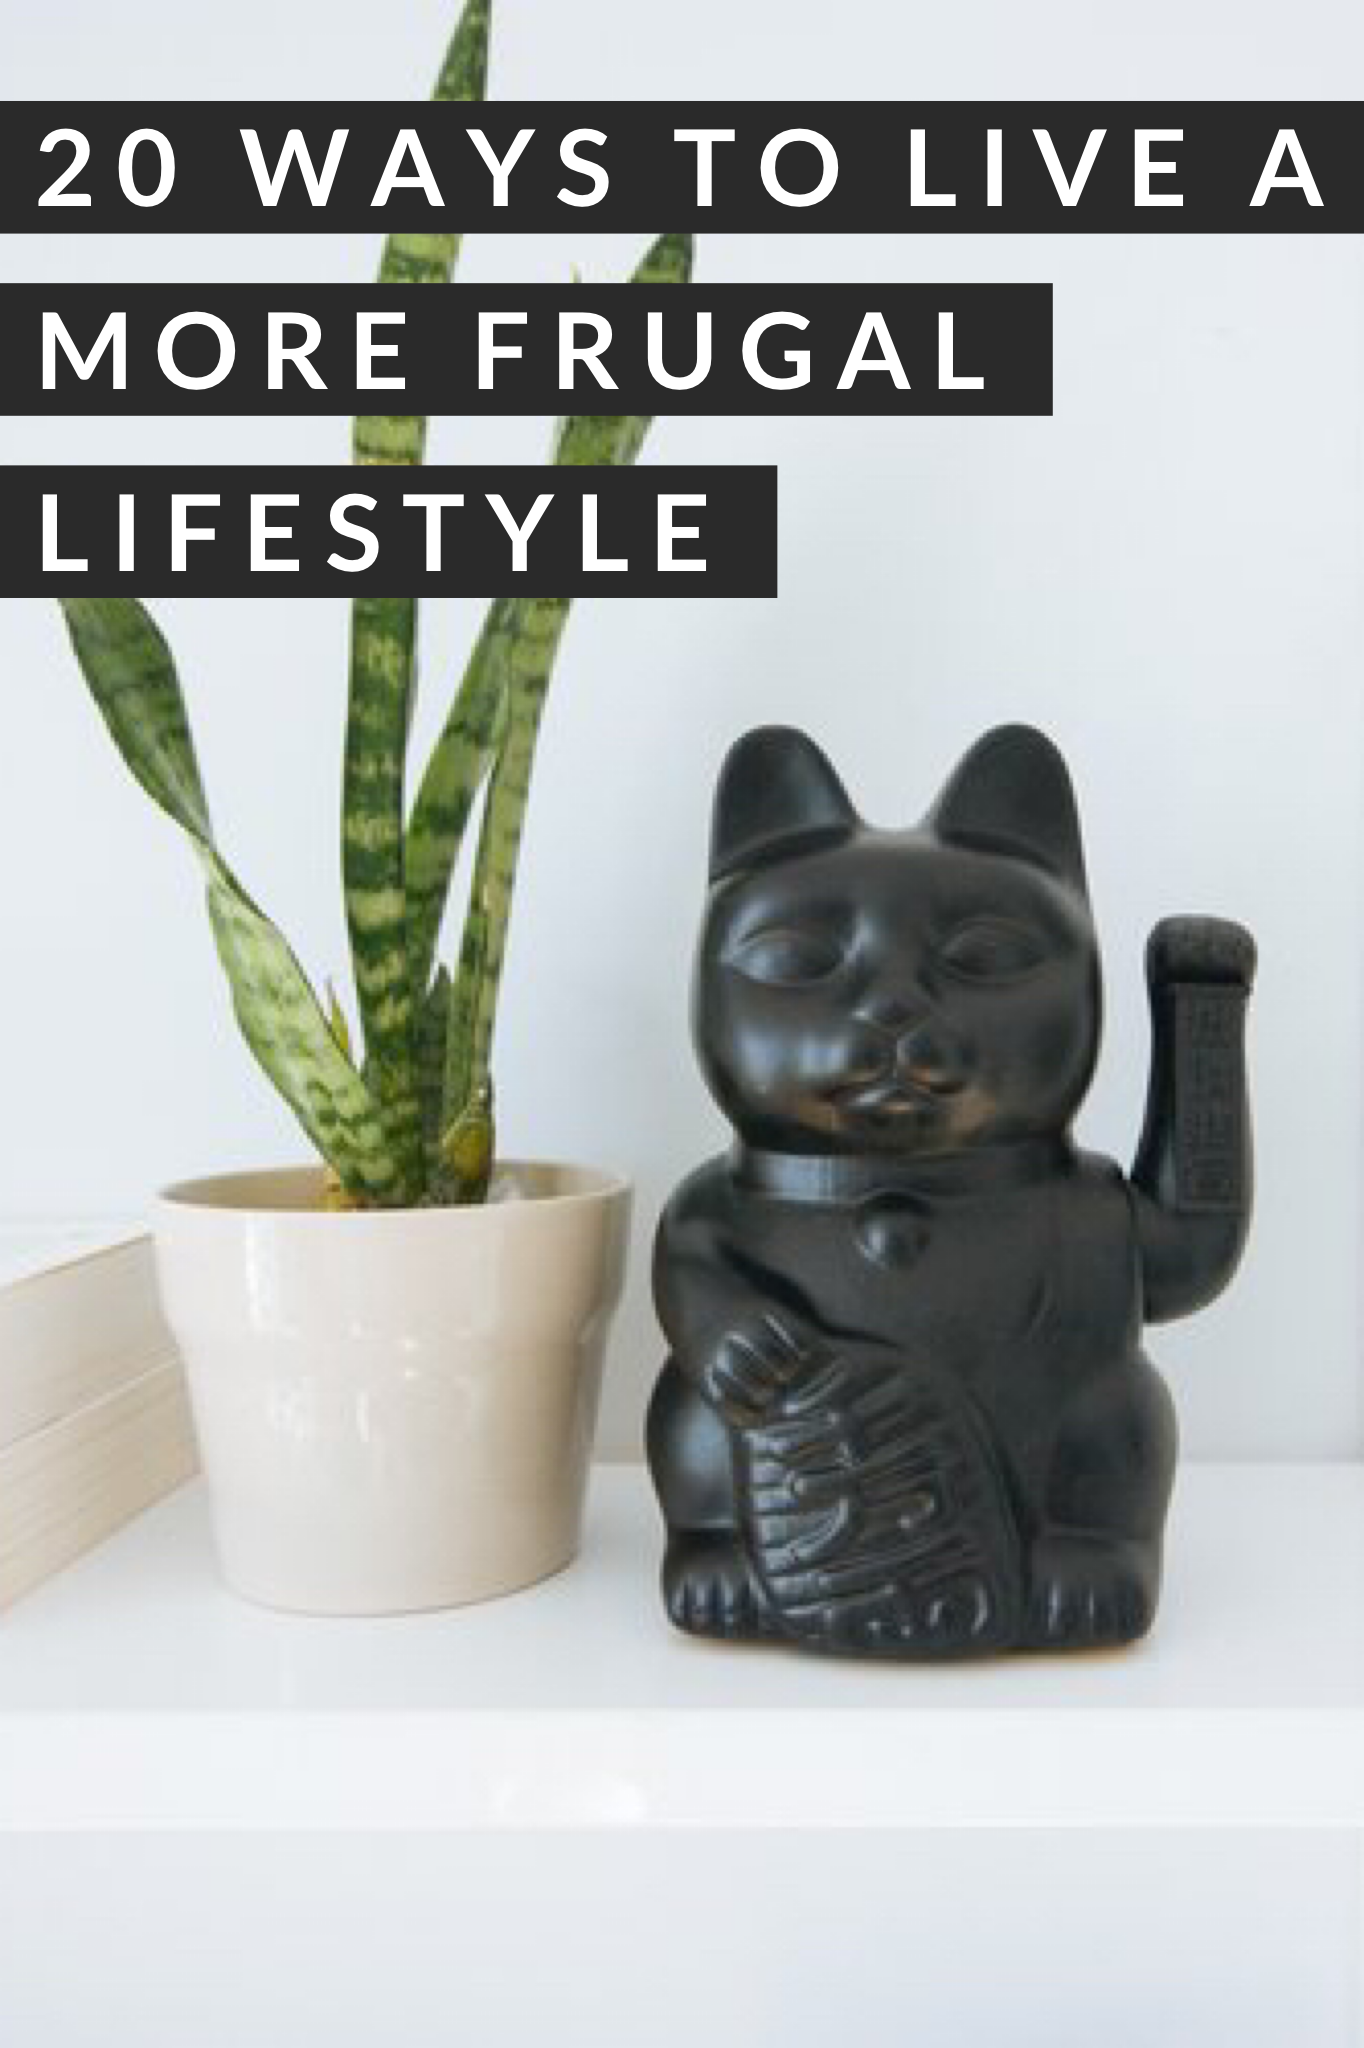 20 Ways to Live a More Frugal Lifestyle. We all know that less is more. There are loads of reasons we should all try to live a little more frugally: so we can save more, so we can give more away, because it feels better to spend money on experiences rather than accumulating things.